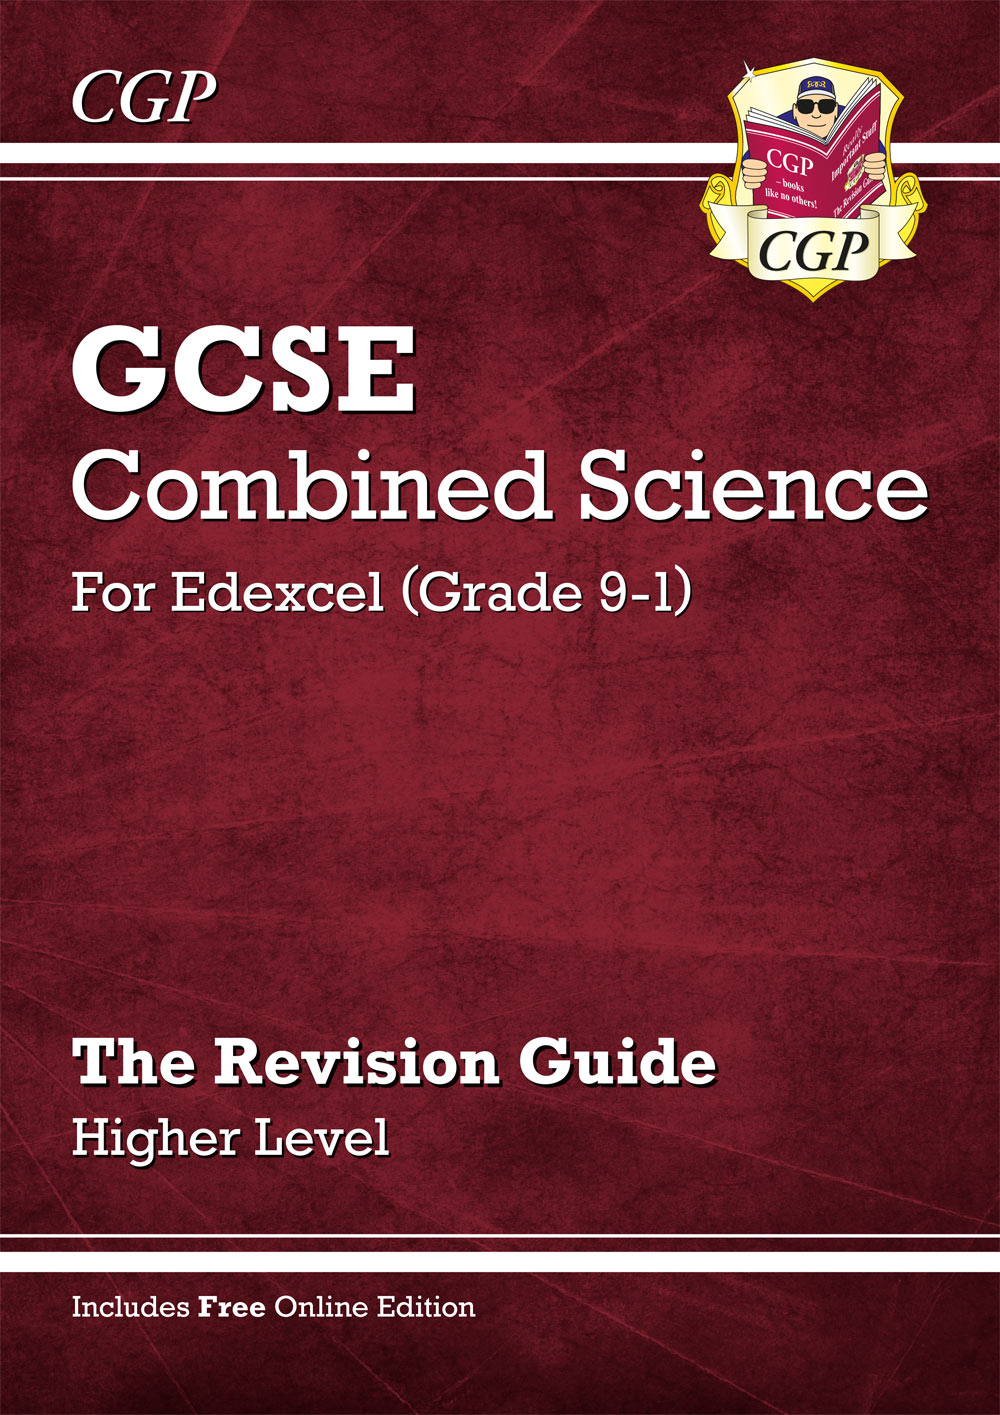 SEHR45 - New Grade 9-1 GCSE Combined Science: Edexcel Revision Guide with Online Edition - Higher